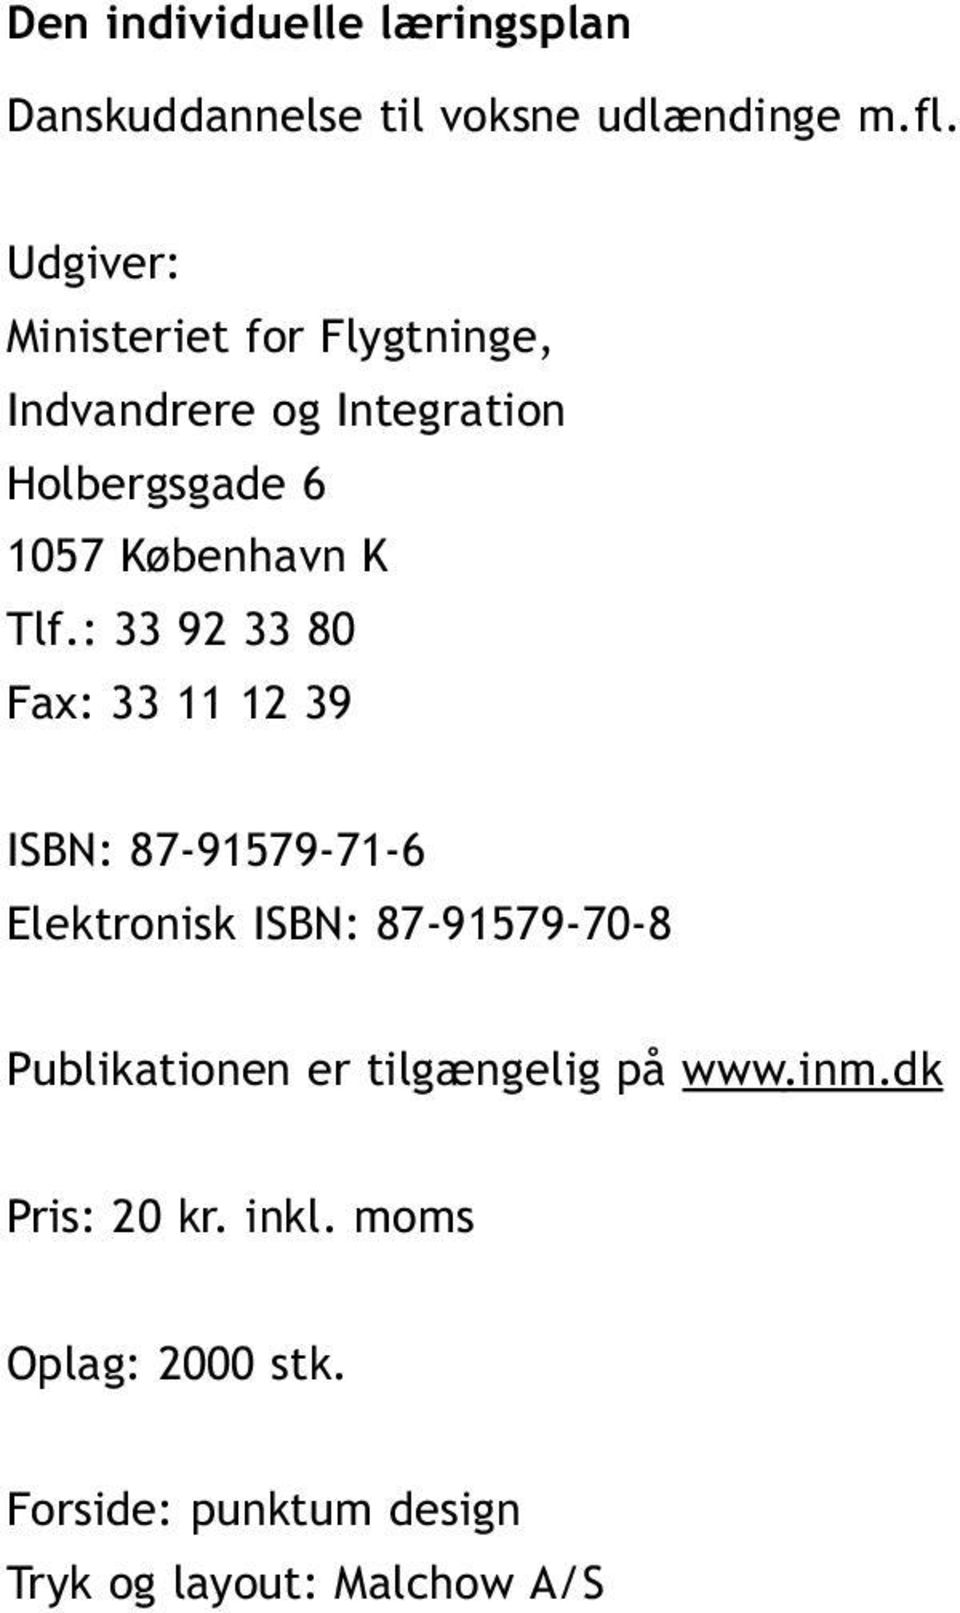 Tlf.: 33 92 33 80 Fax: 33 11 12 39 ISBN: 87-91579-71-6 Elektronisk ISBN: 87-91579-70-8